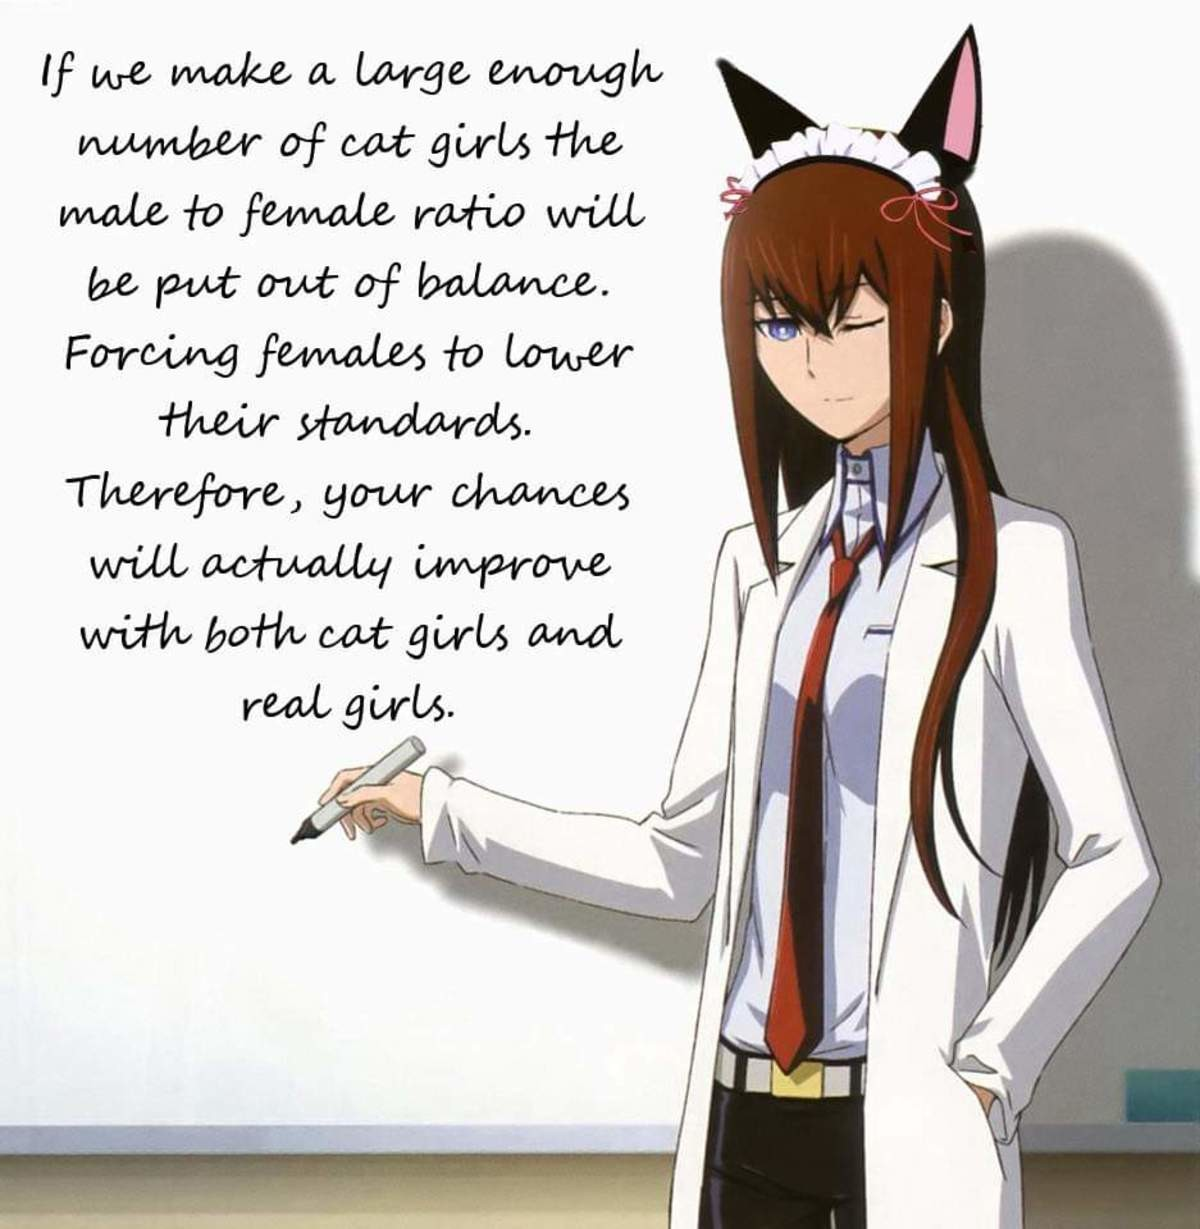 DO IT ELON MUSK. join list: MonMusuManiacs (1574 subs)Mention History join list:. Only for a short while though. In the future, the excess females will die off and bring the ratio back to its former status